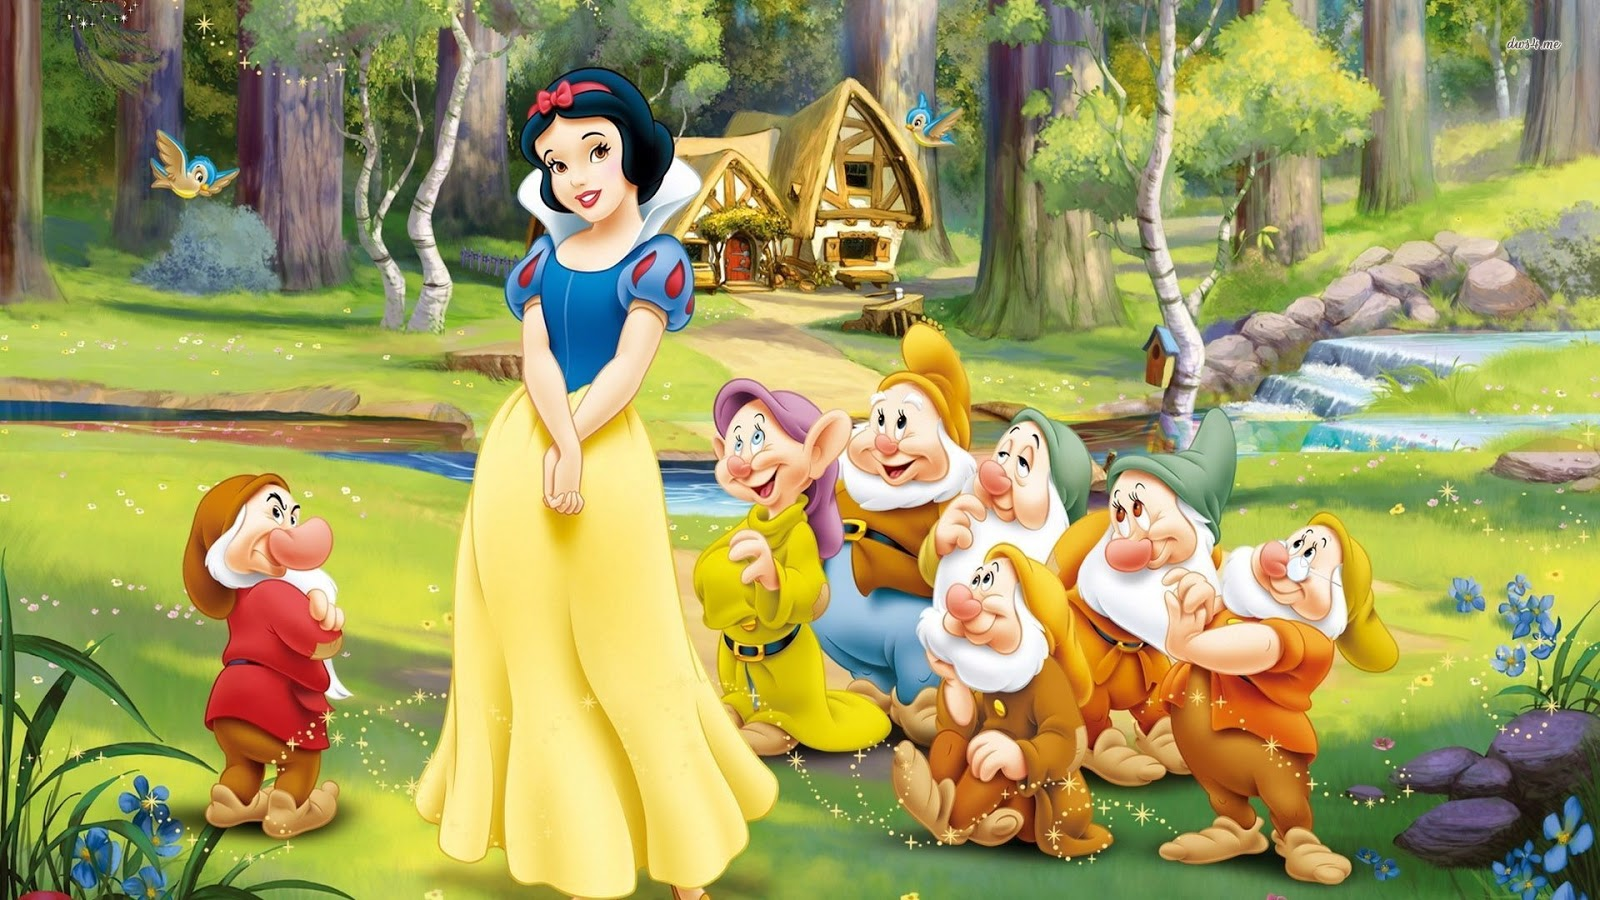 High Resolution Wallpaper | Snow White And The Seven Dwarfs 1600x900 px